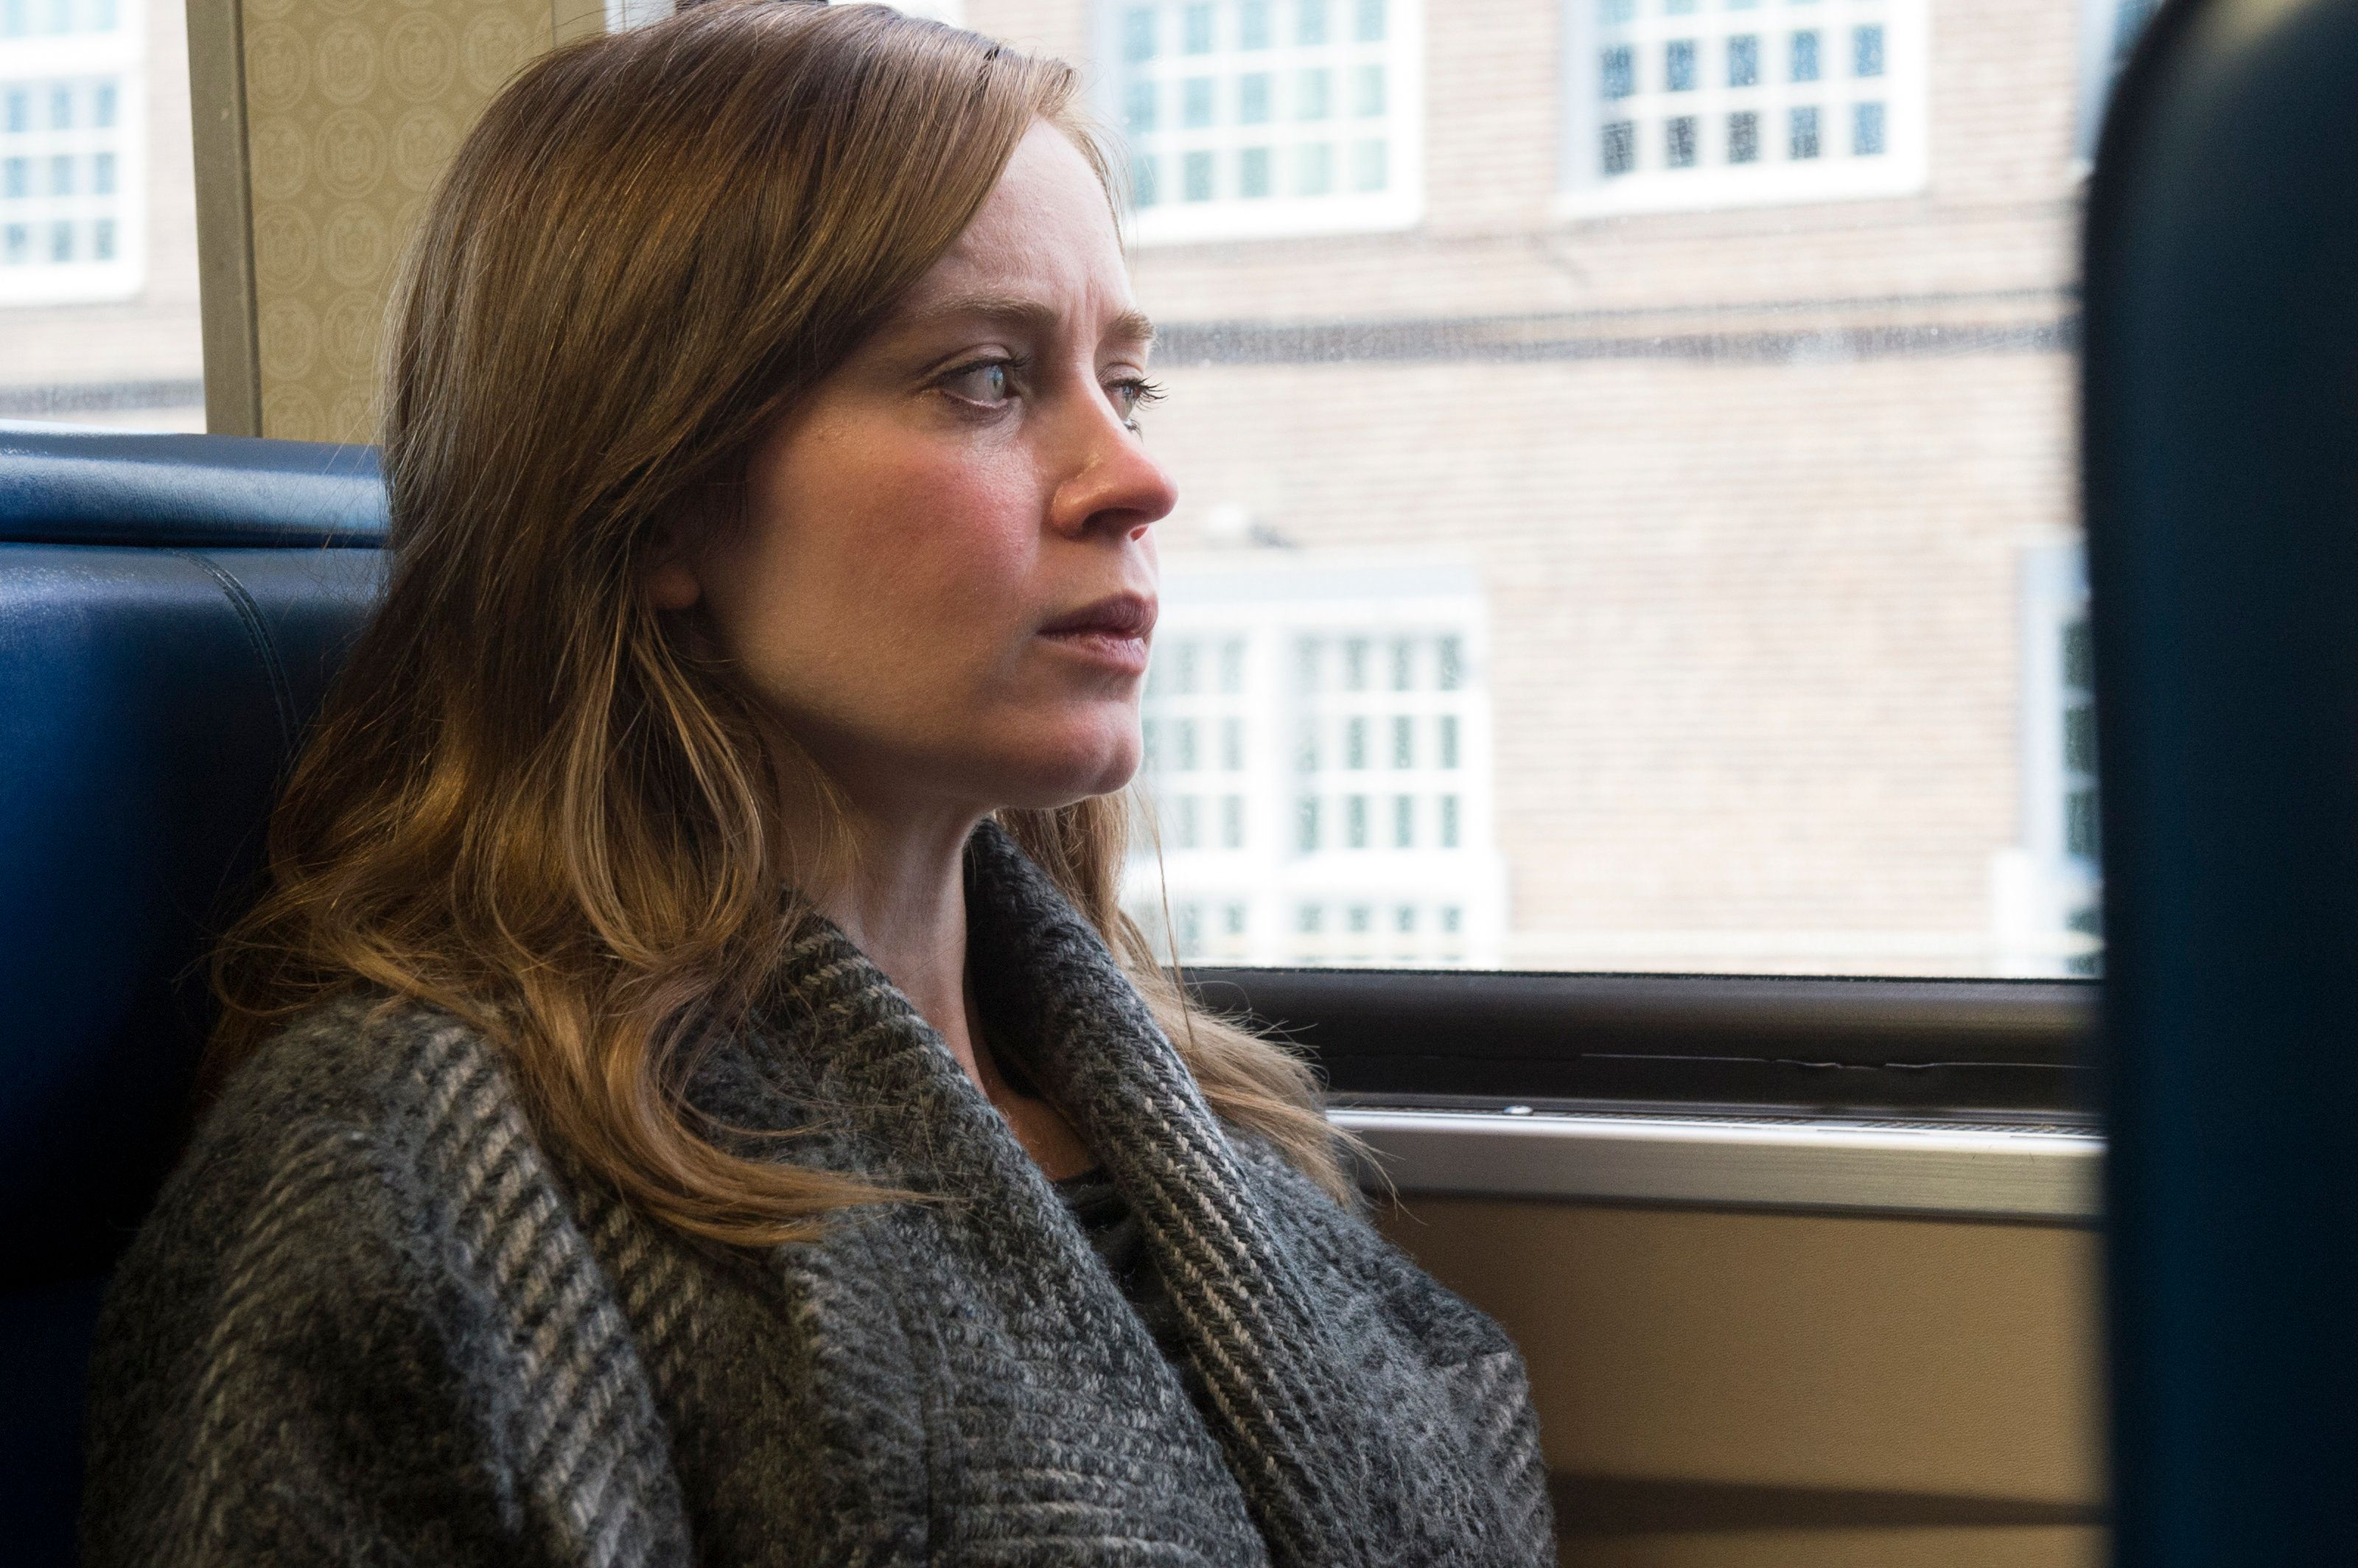 "EMILY BLUNT stars in DreamWorks Pictures' ""The Girl on the Train,"" from director Tate Taylor and producer Marc Platt.  In the thriller, Rachel (Blunt), who is devastated by her recent divorce, spends her daily commute fantasizing about the seemingly perfect couple who live in a house that her train passes every day, until one morning she sees something shocking happen there and becomes entangled in the mystery that unfolds."